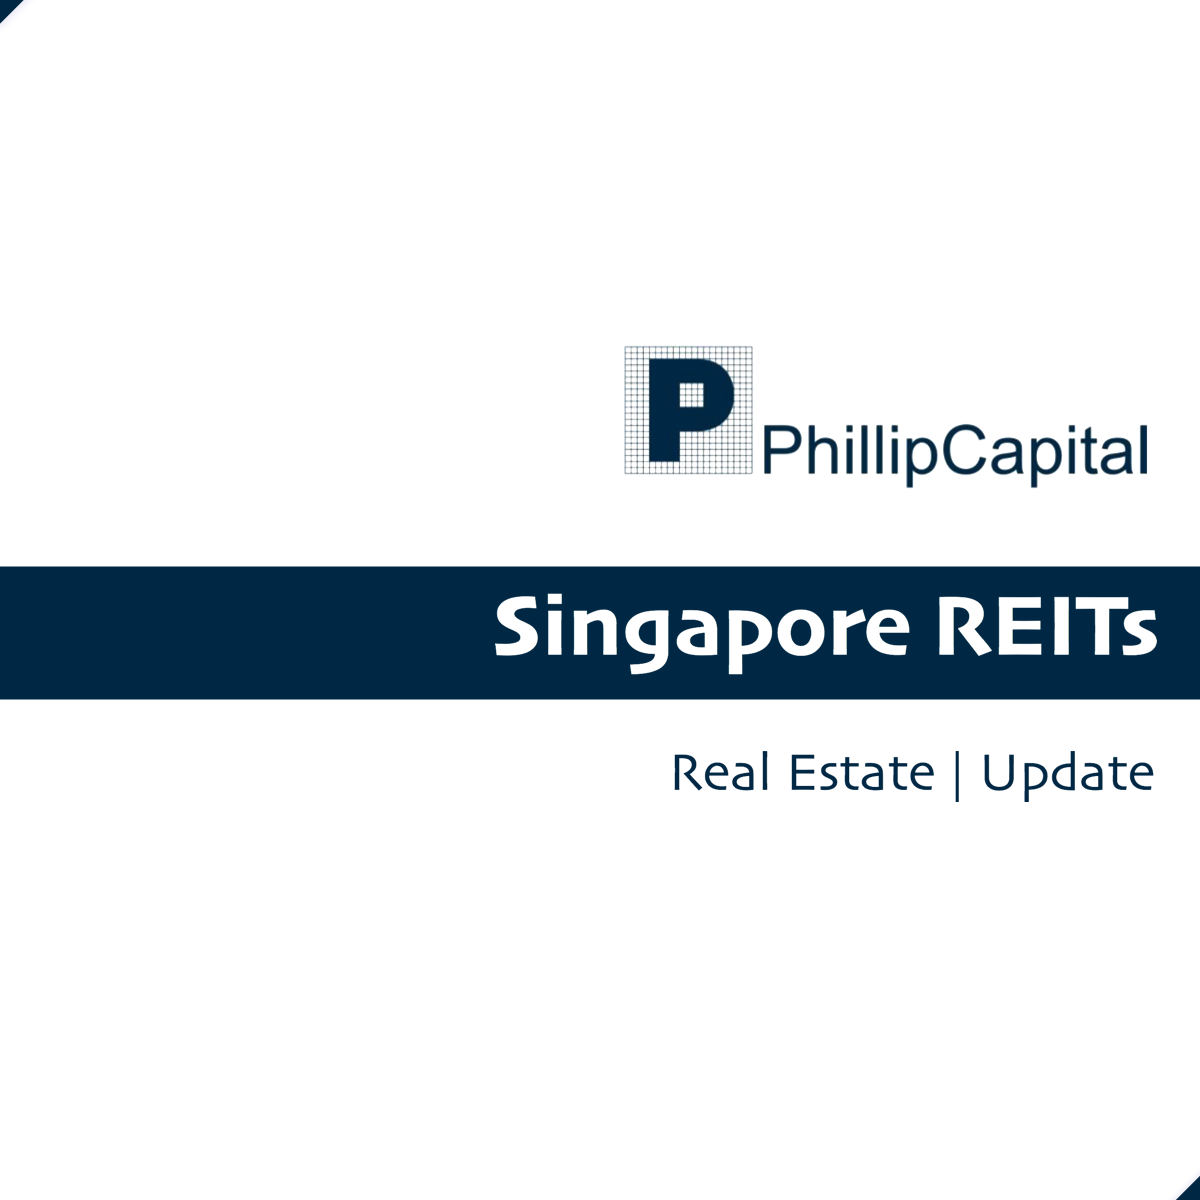 Singapore REITs - Phillip Securities 2018-03-26: First Rate Hike In 2018 And The Implications For S-REITs